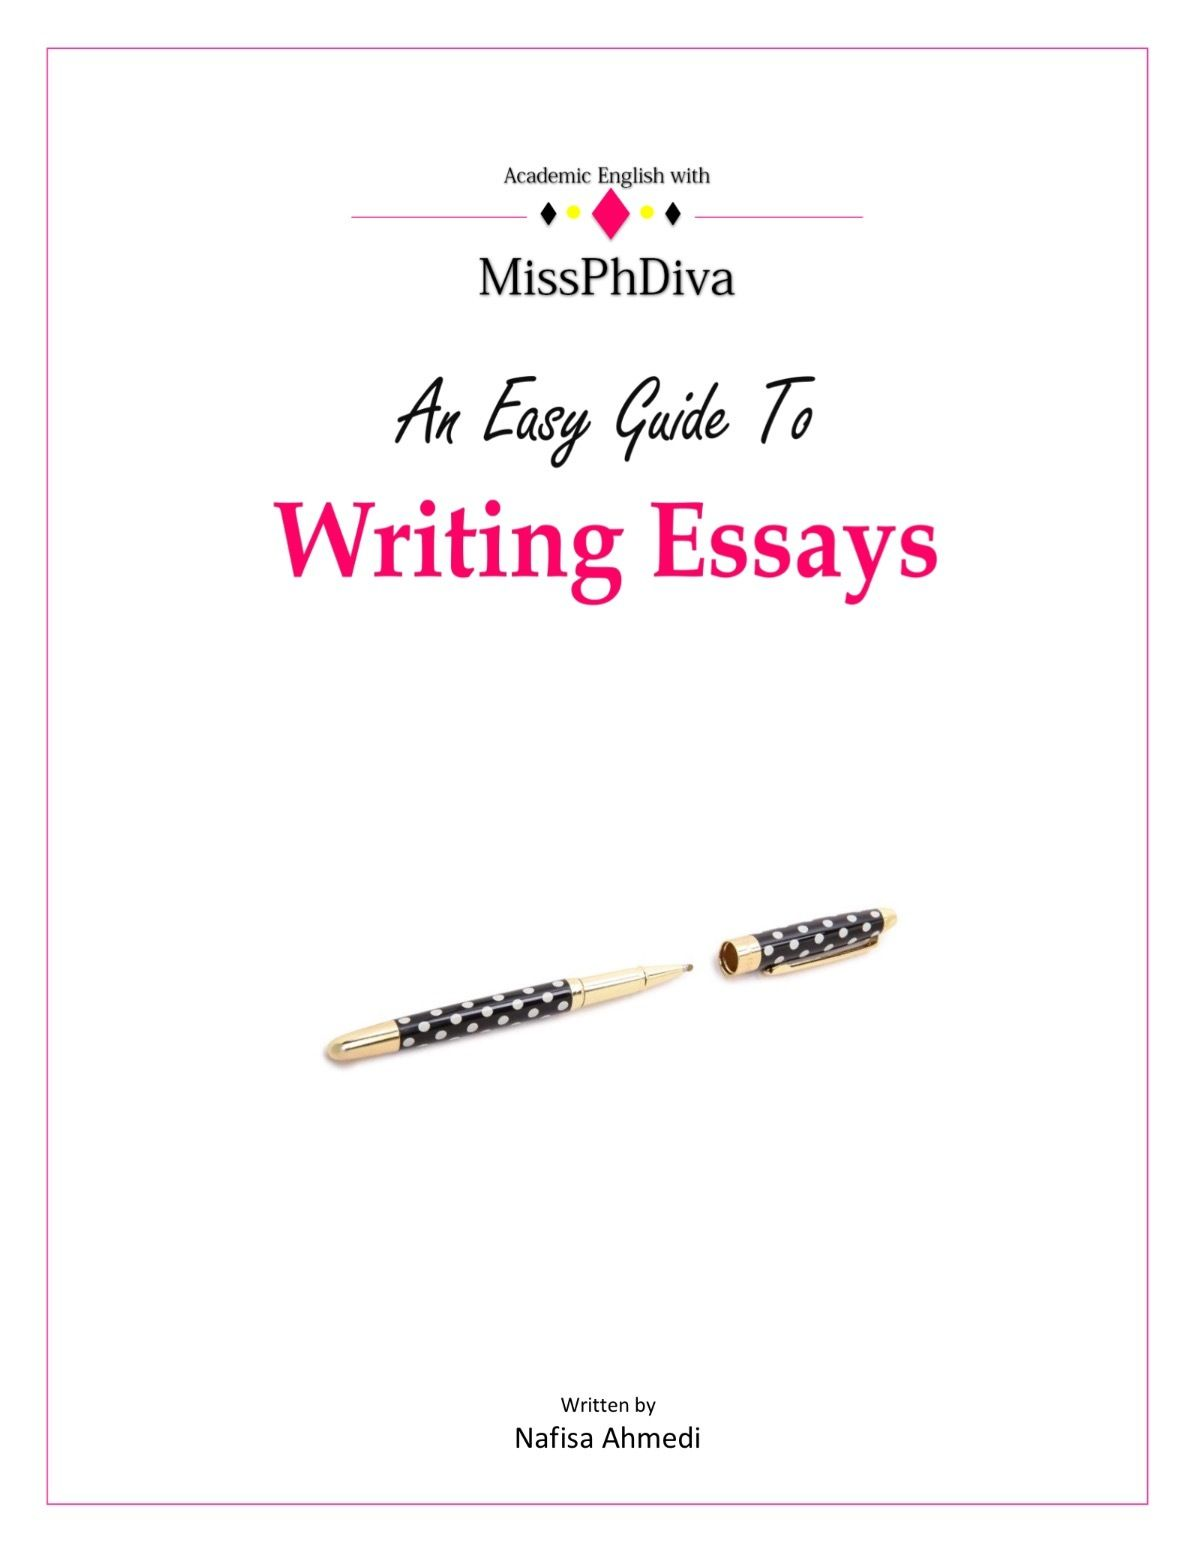 An Easy Guide To Writing Essays